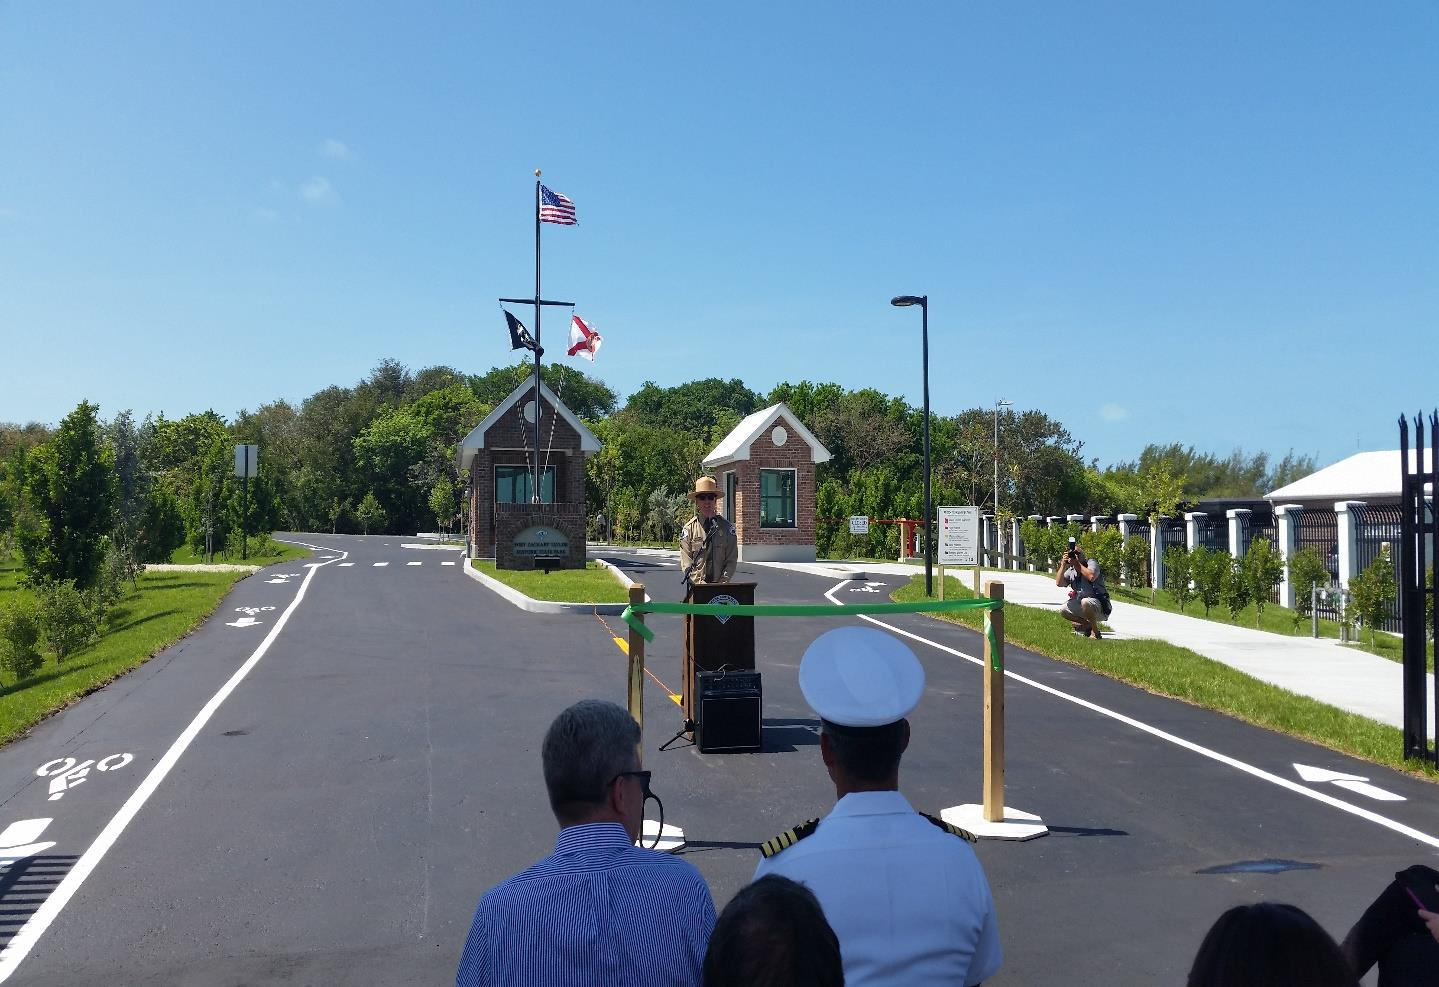 Fort Zachary Taylor State Park New Entry Station Ribbon Cutting Ceremony, May 2, 2017